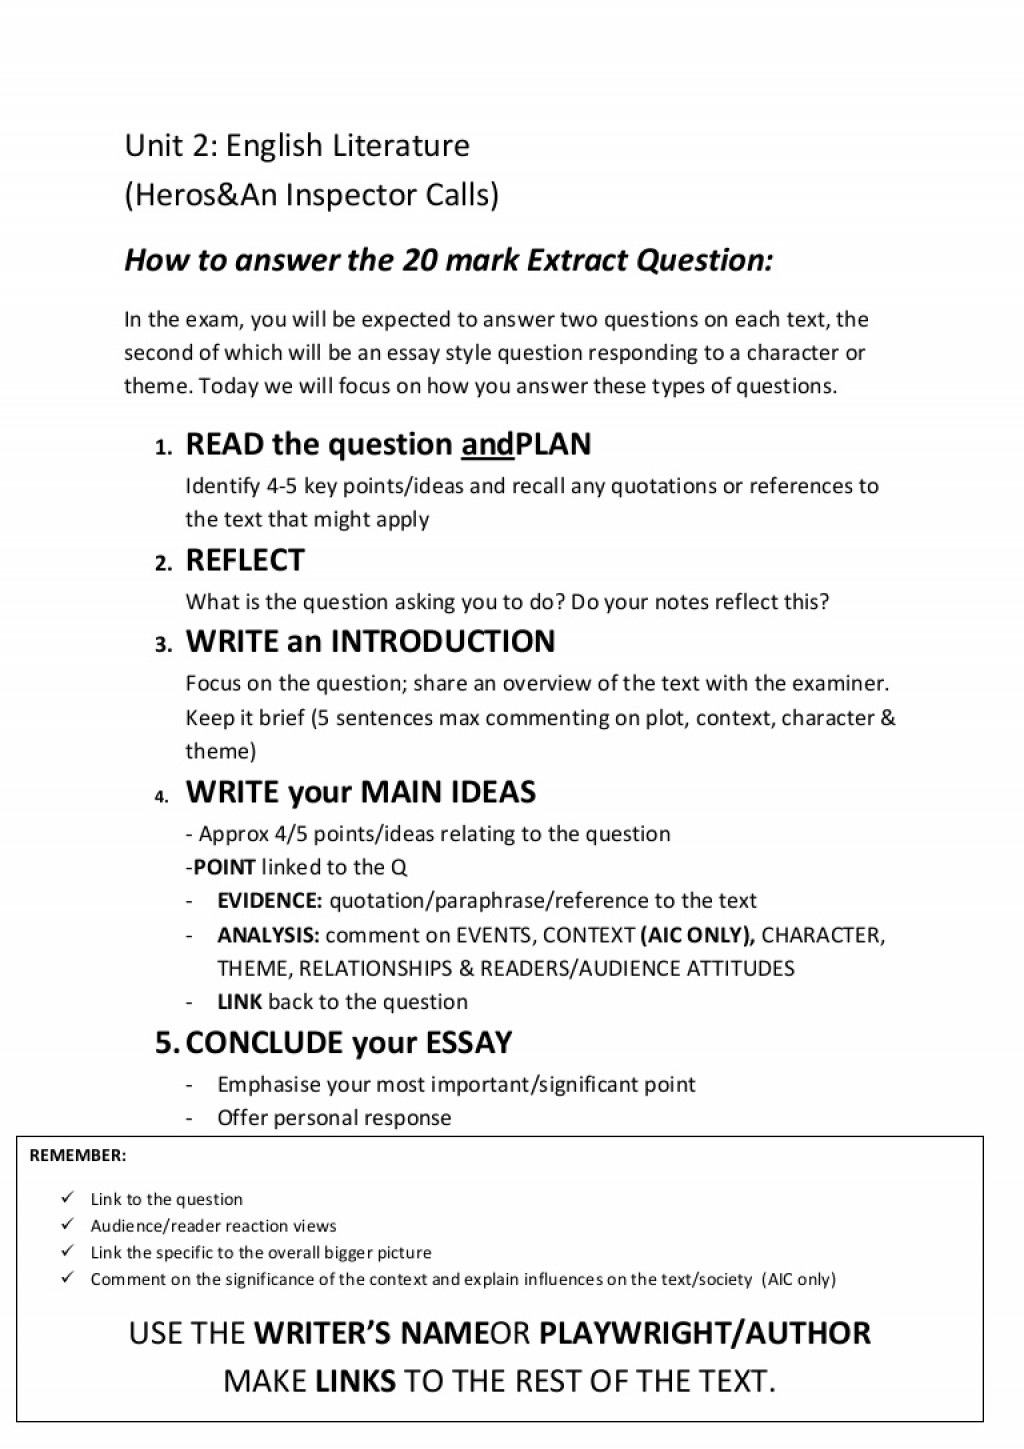 015 Howtoanswerthe20markquestion Phpapp02 Thumbnail Essay Example Impressive Response Format Definition Conclusion Large